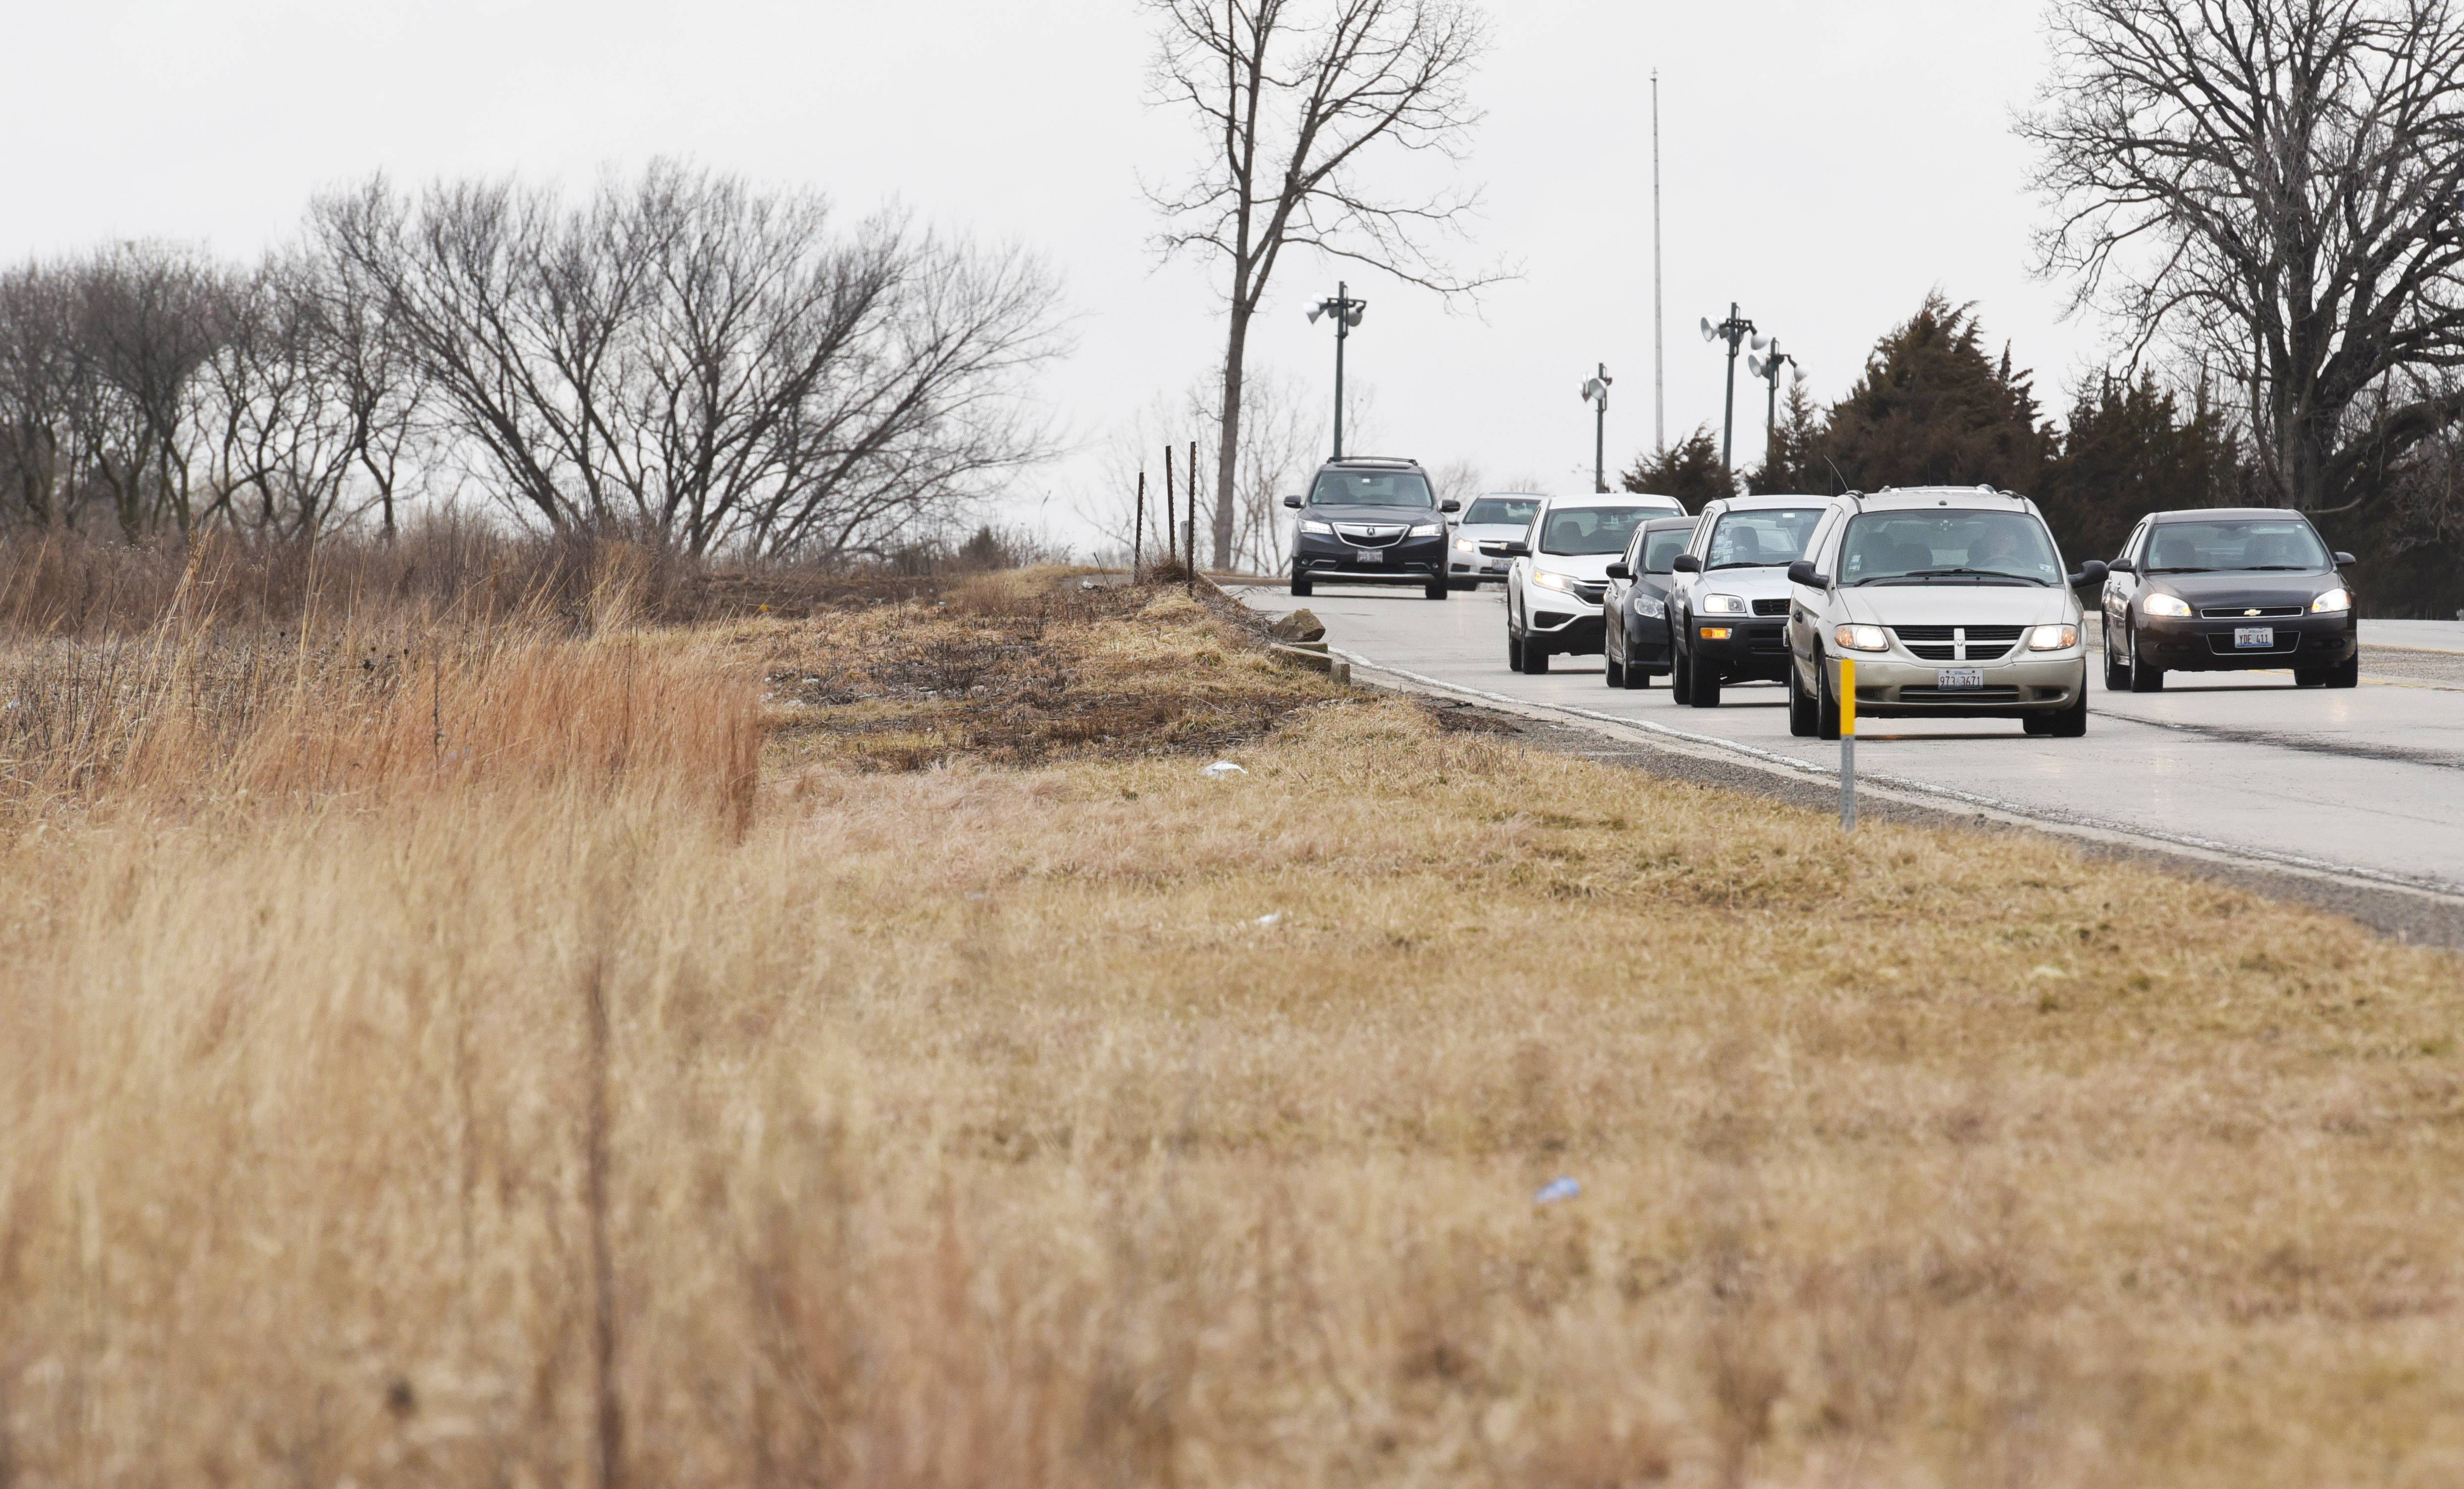 Libertyville plans to fight a recent court ruling in favor of the Archdiocese of Chicago, which sued the village regarding a proposed residential development on this property west of Butterfield Road and south of Lake Street.